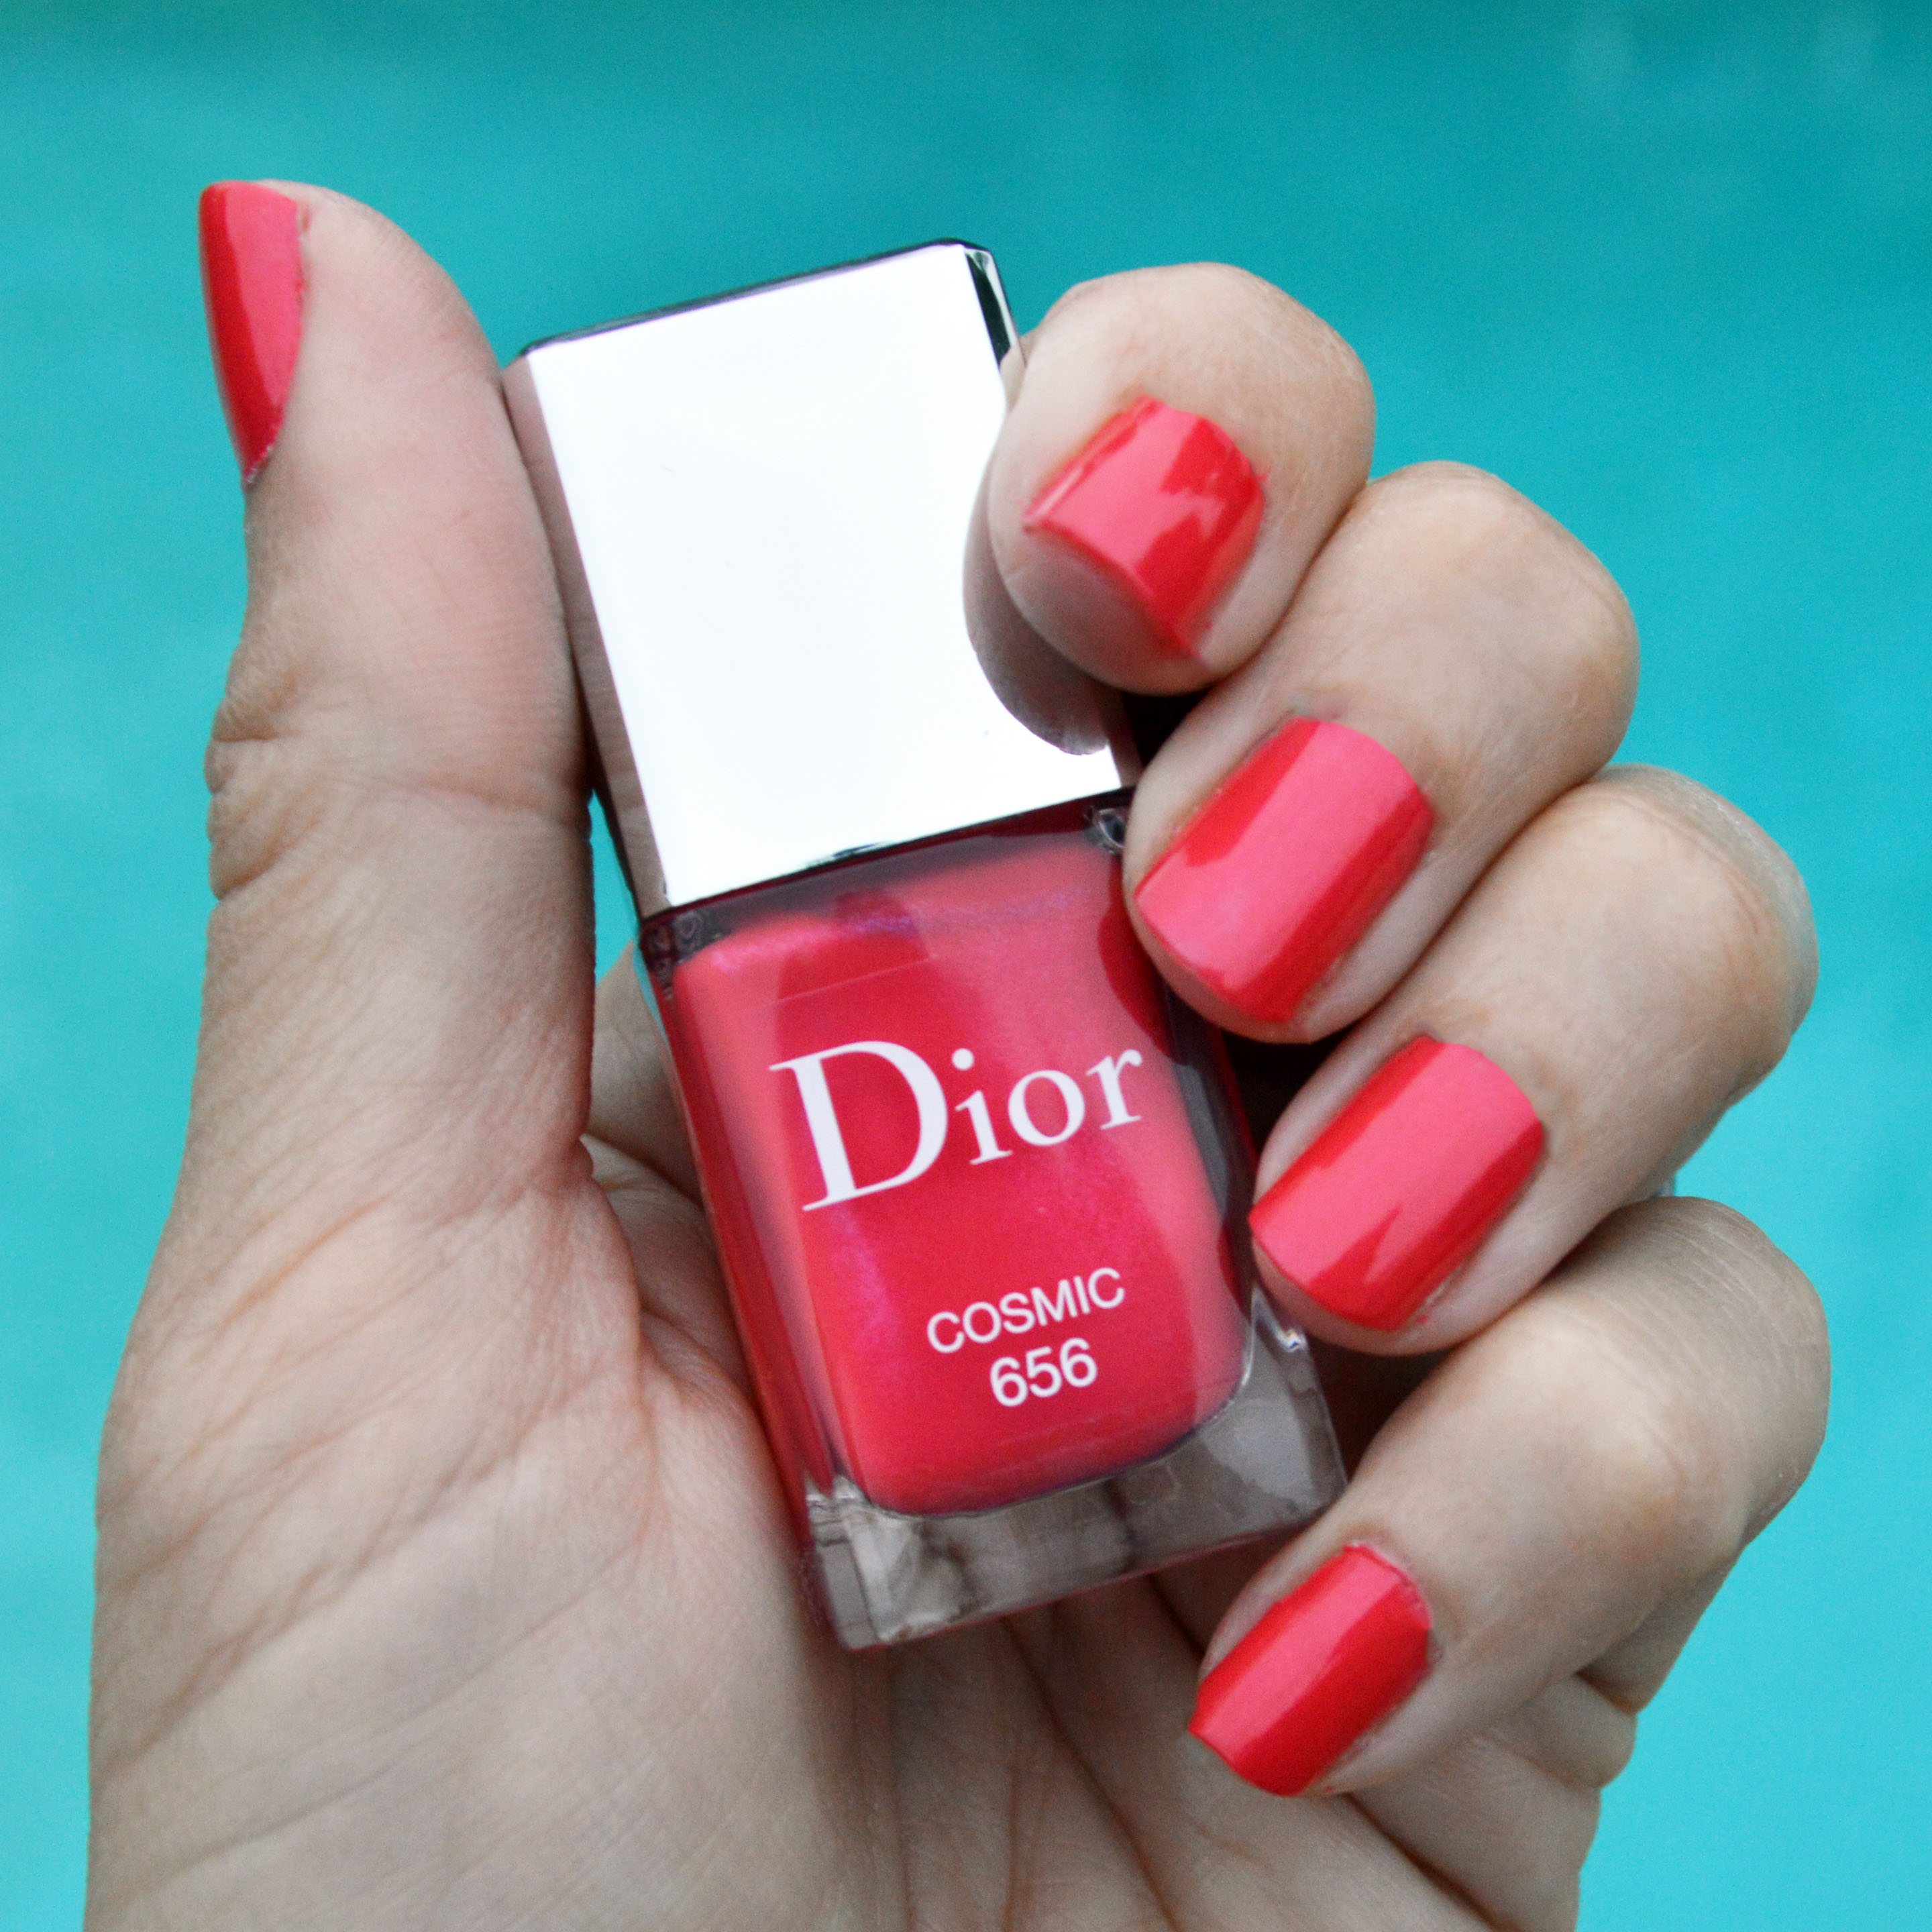 Dior Cosmic nail polish summer 2016 review – Bay Area Fashionista